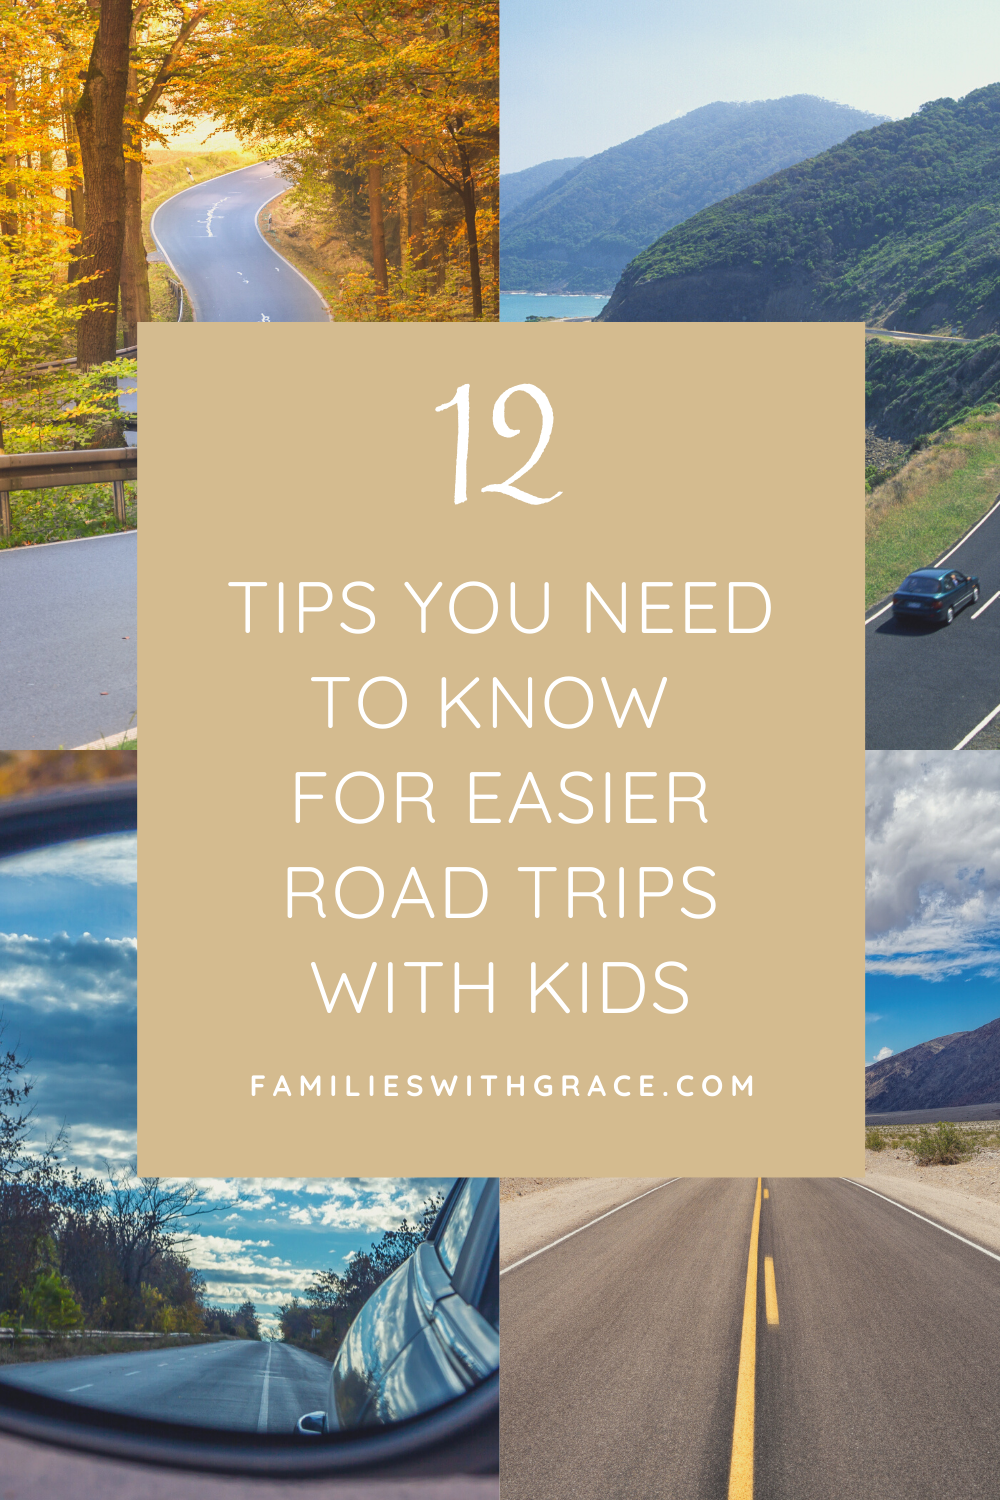 Tips you need for road trips with kids